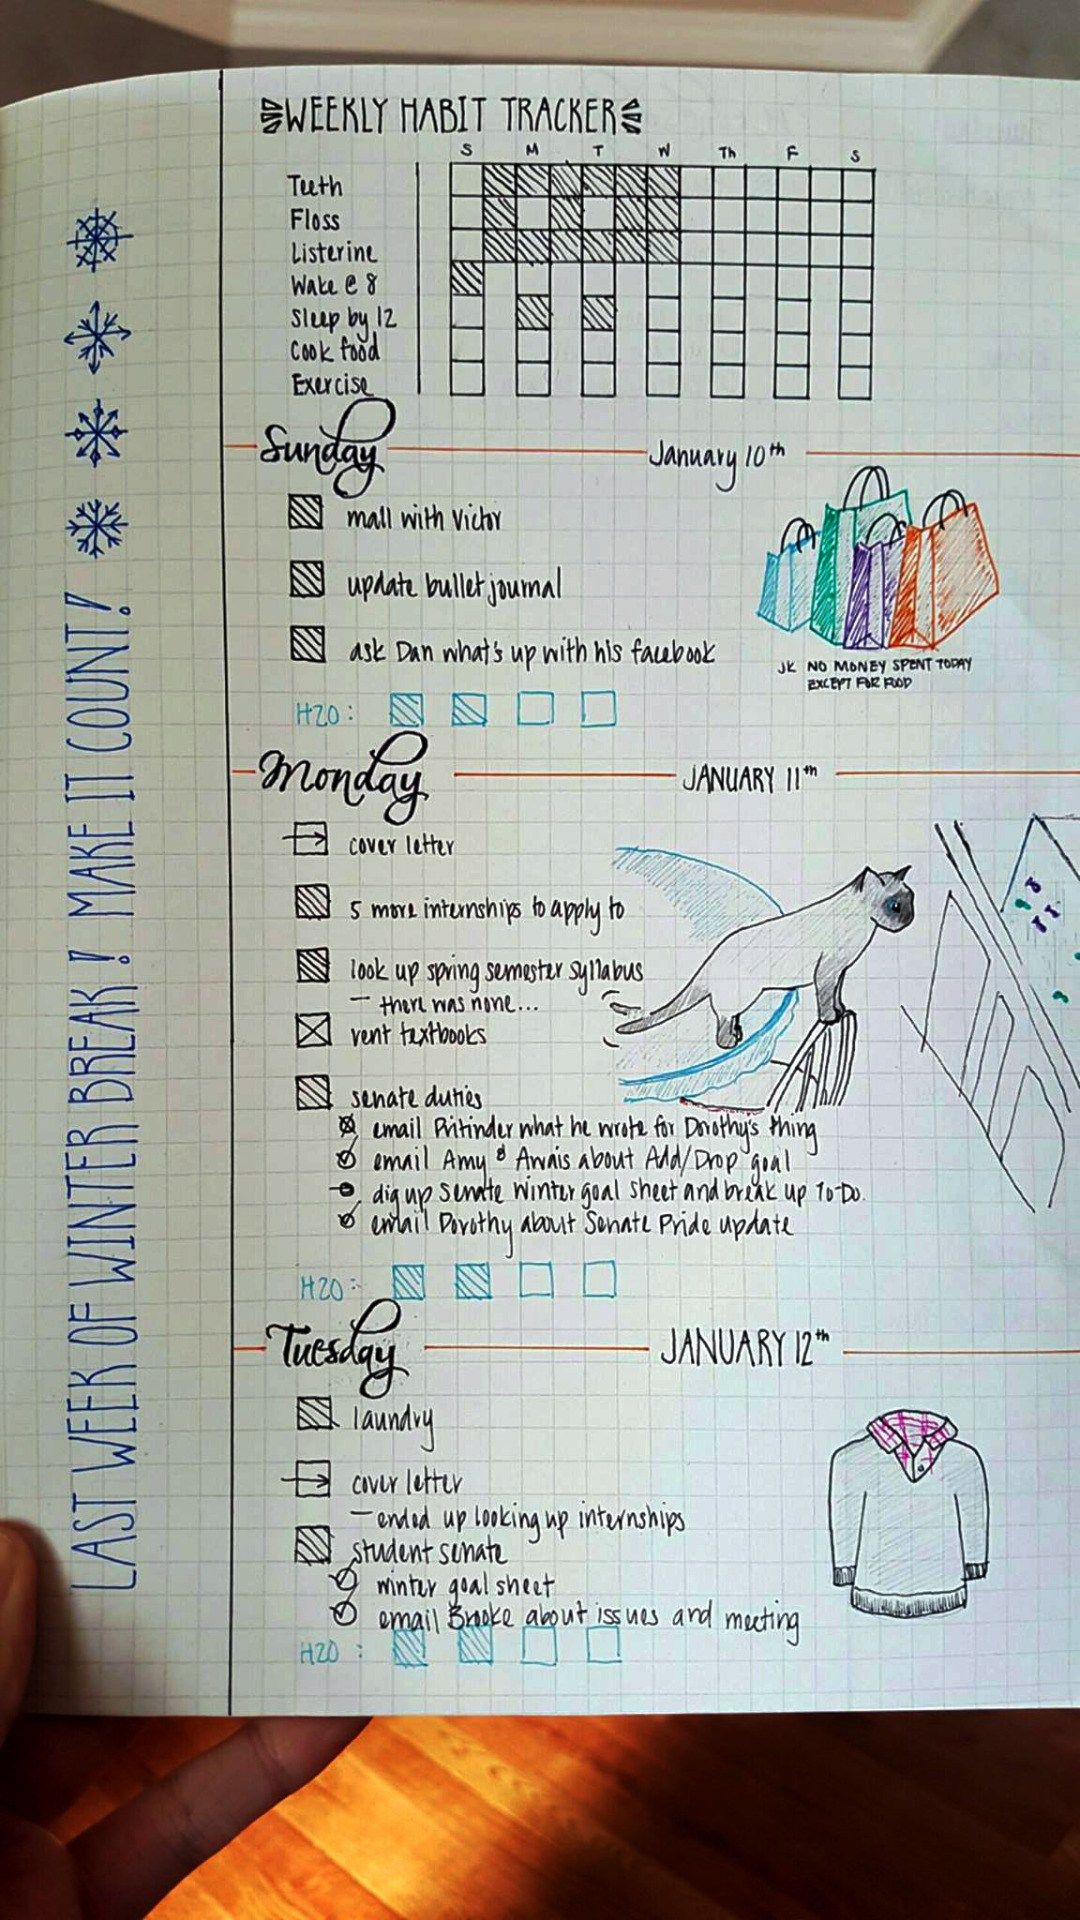 Bullet journal habit tracker notes pinterest carnets de voyage bullet journal et bullet - Idee tracker bullet journal ...